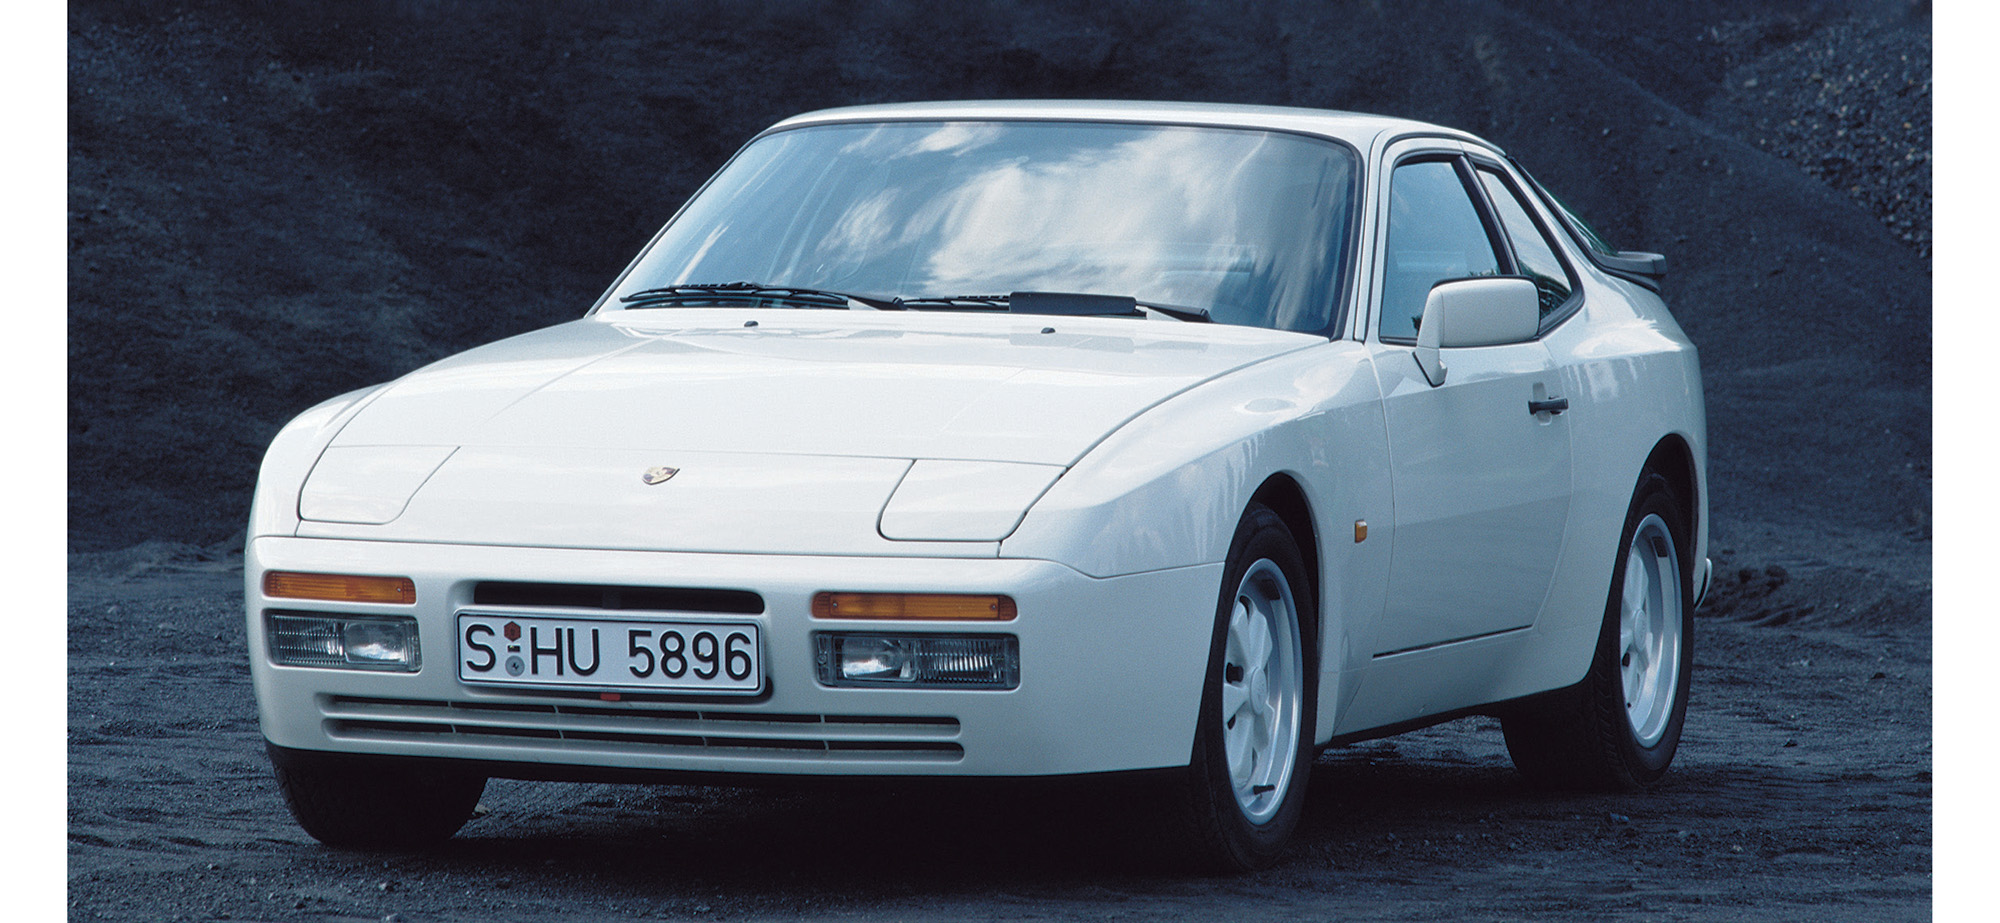 Vintage Views: Porsche 944 Turbo